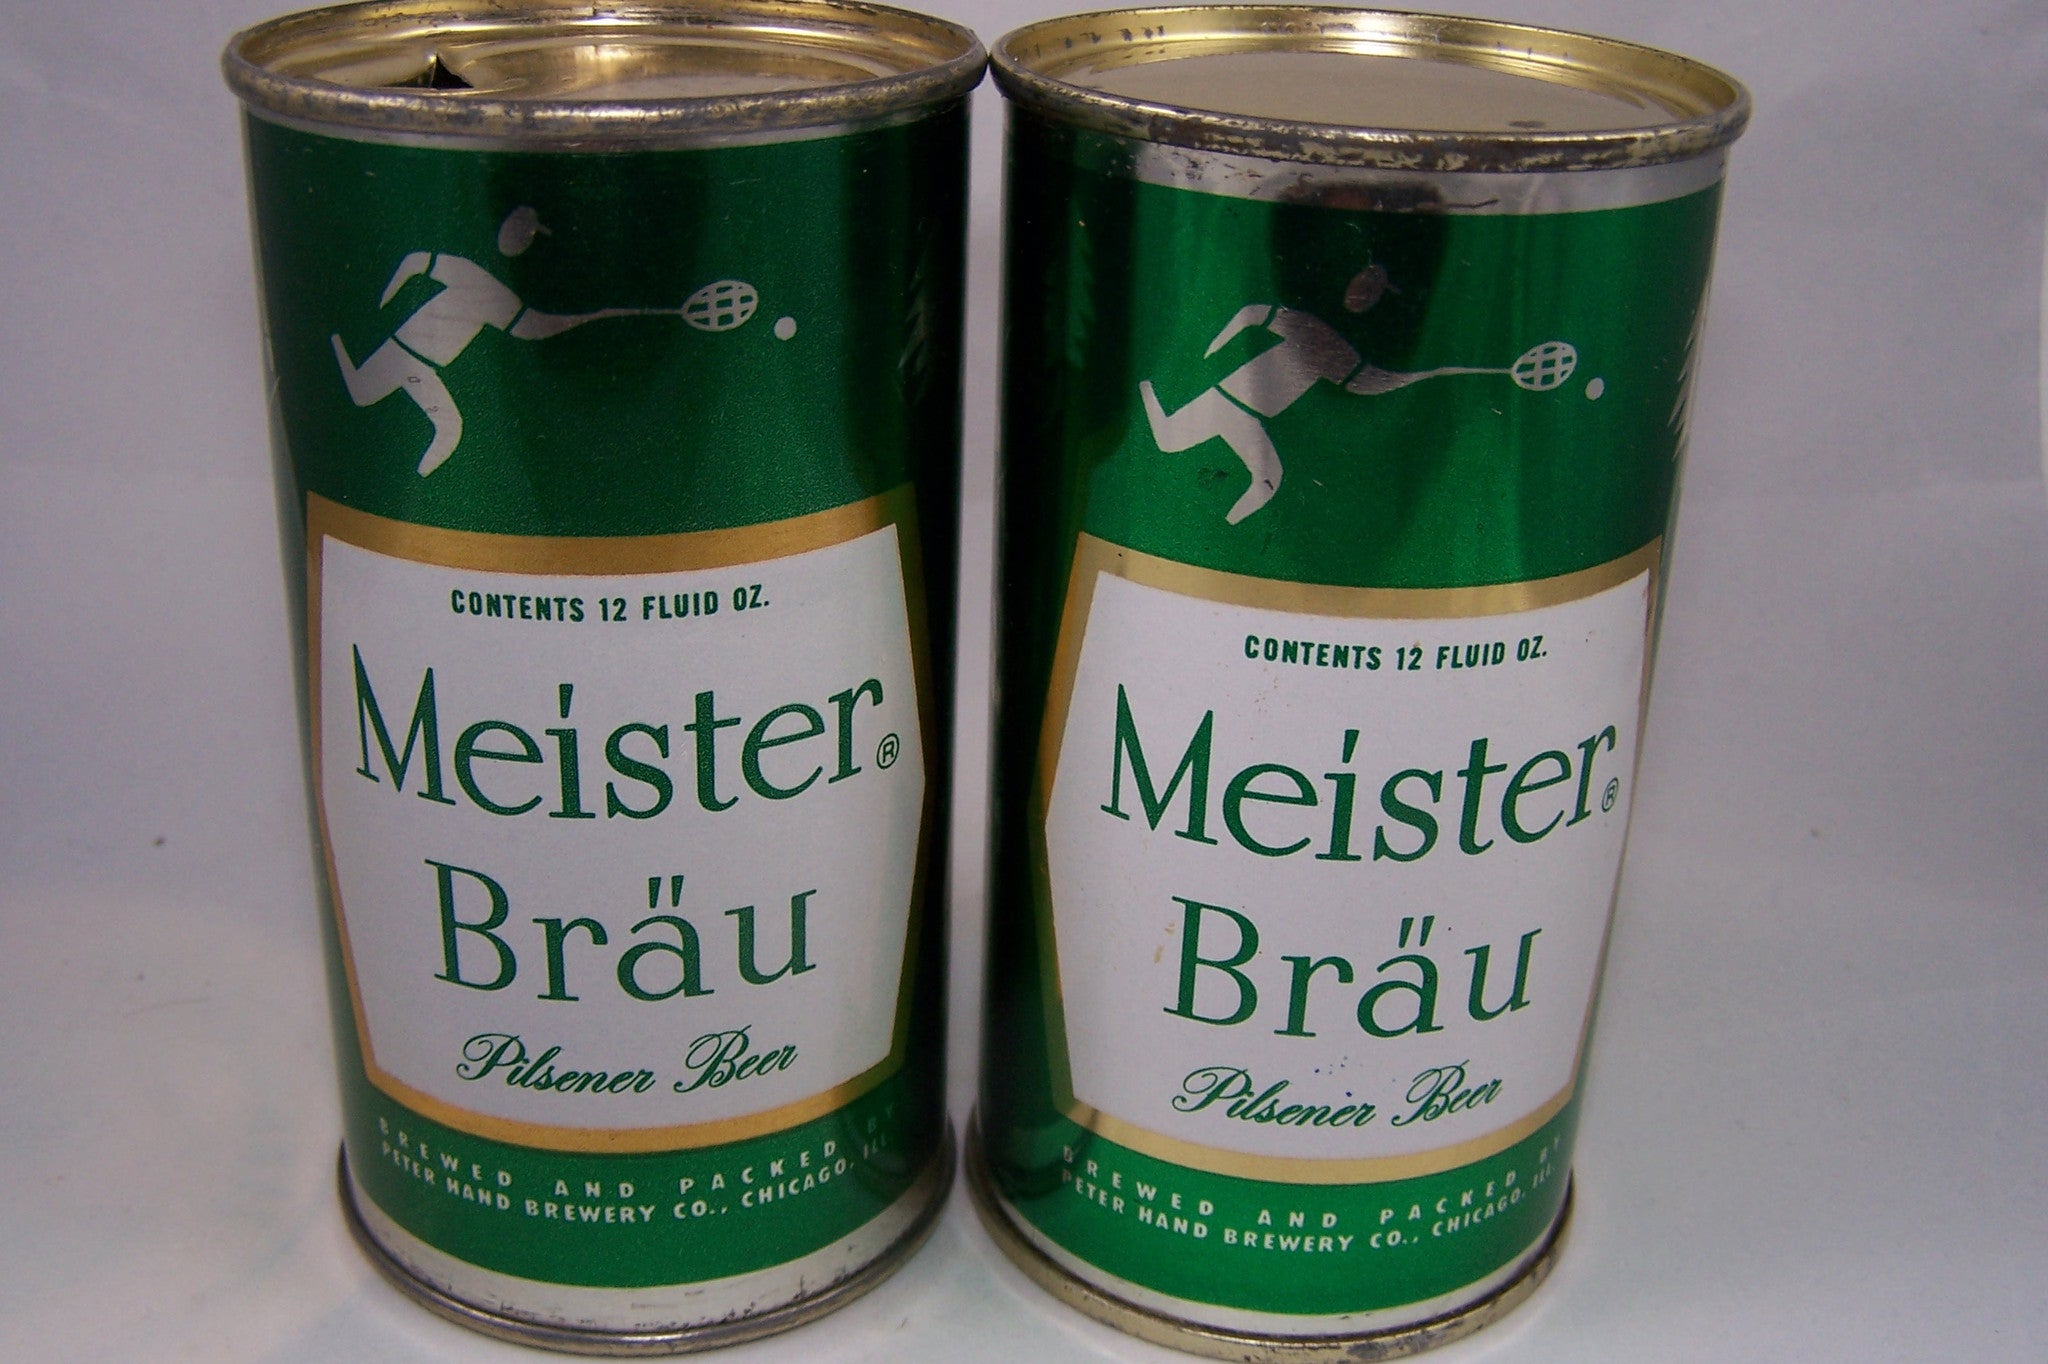 Meister Brau (Sports) Pilsener Beer (Metallic) USBC 95-38, Grade 1/1+ Sold on 9/28/15